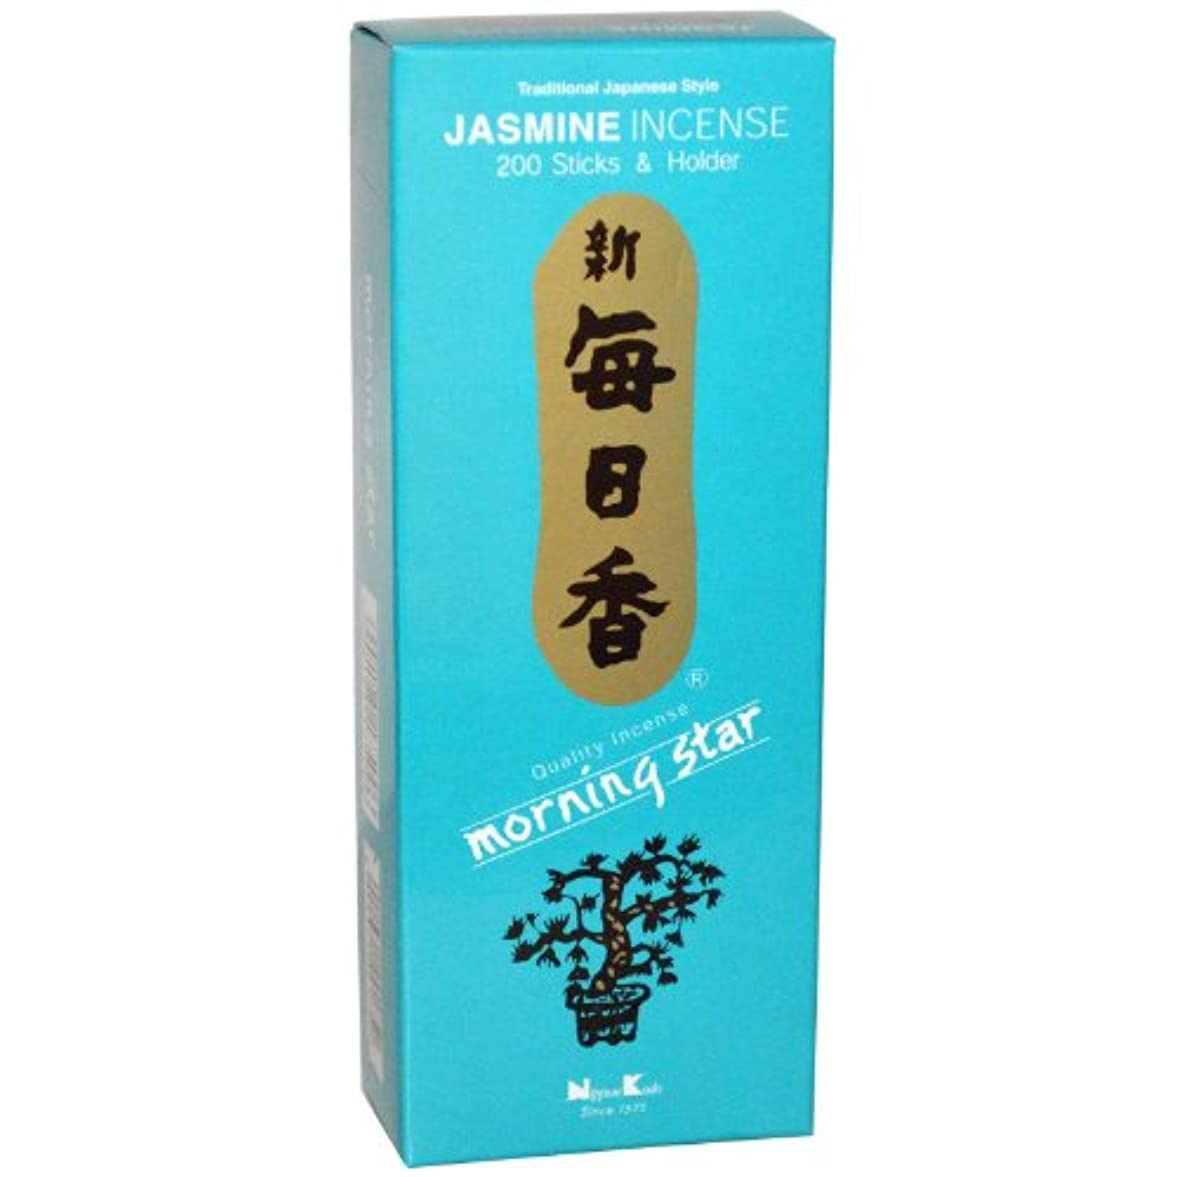 後ろ、背後、背面(部投げ捨てる誇りNippon Kodo, Morning Star, Jasmine Incense, 200 Sticks & Holder